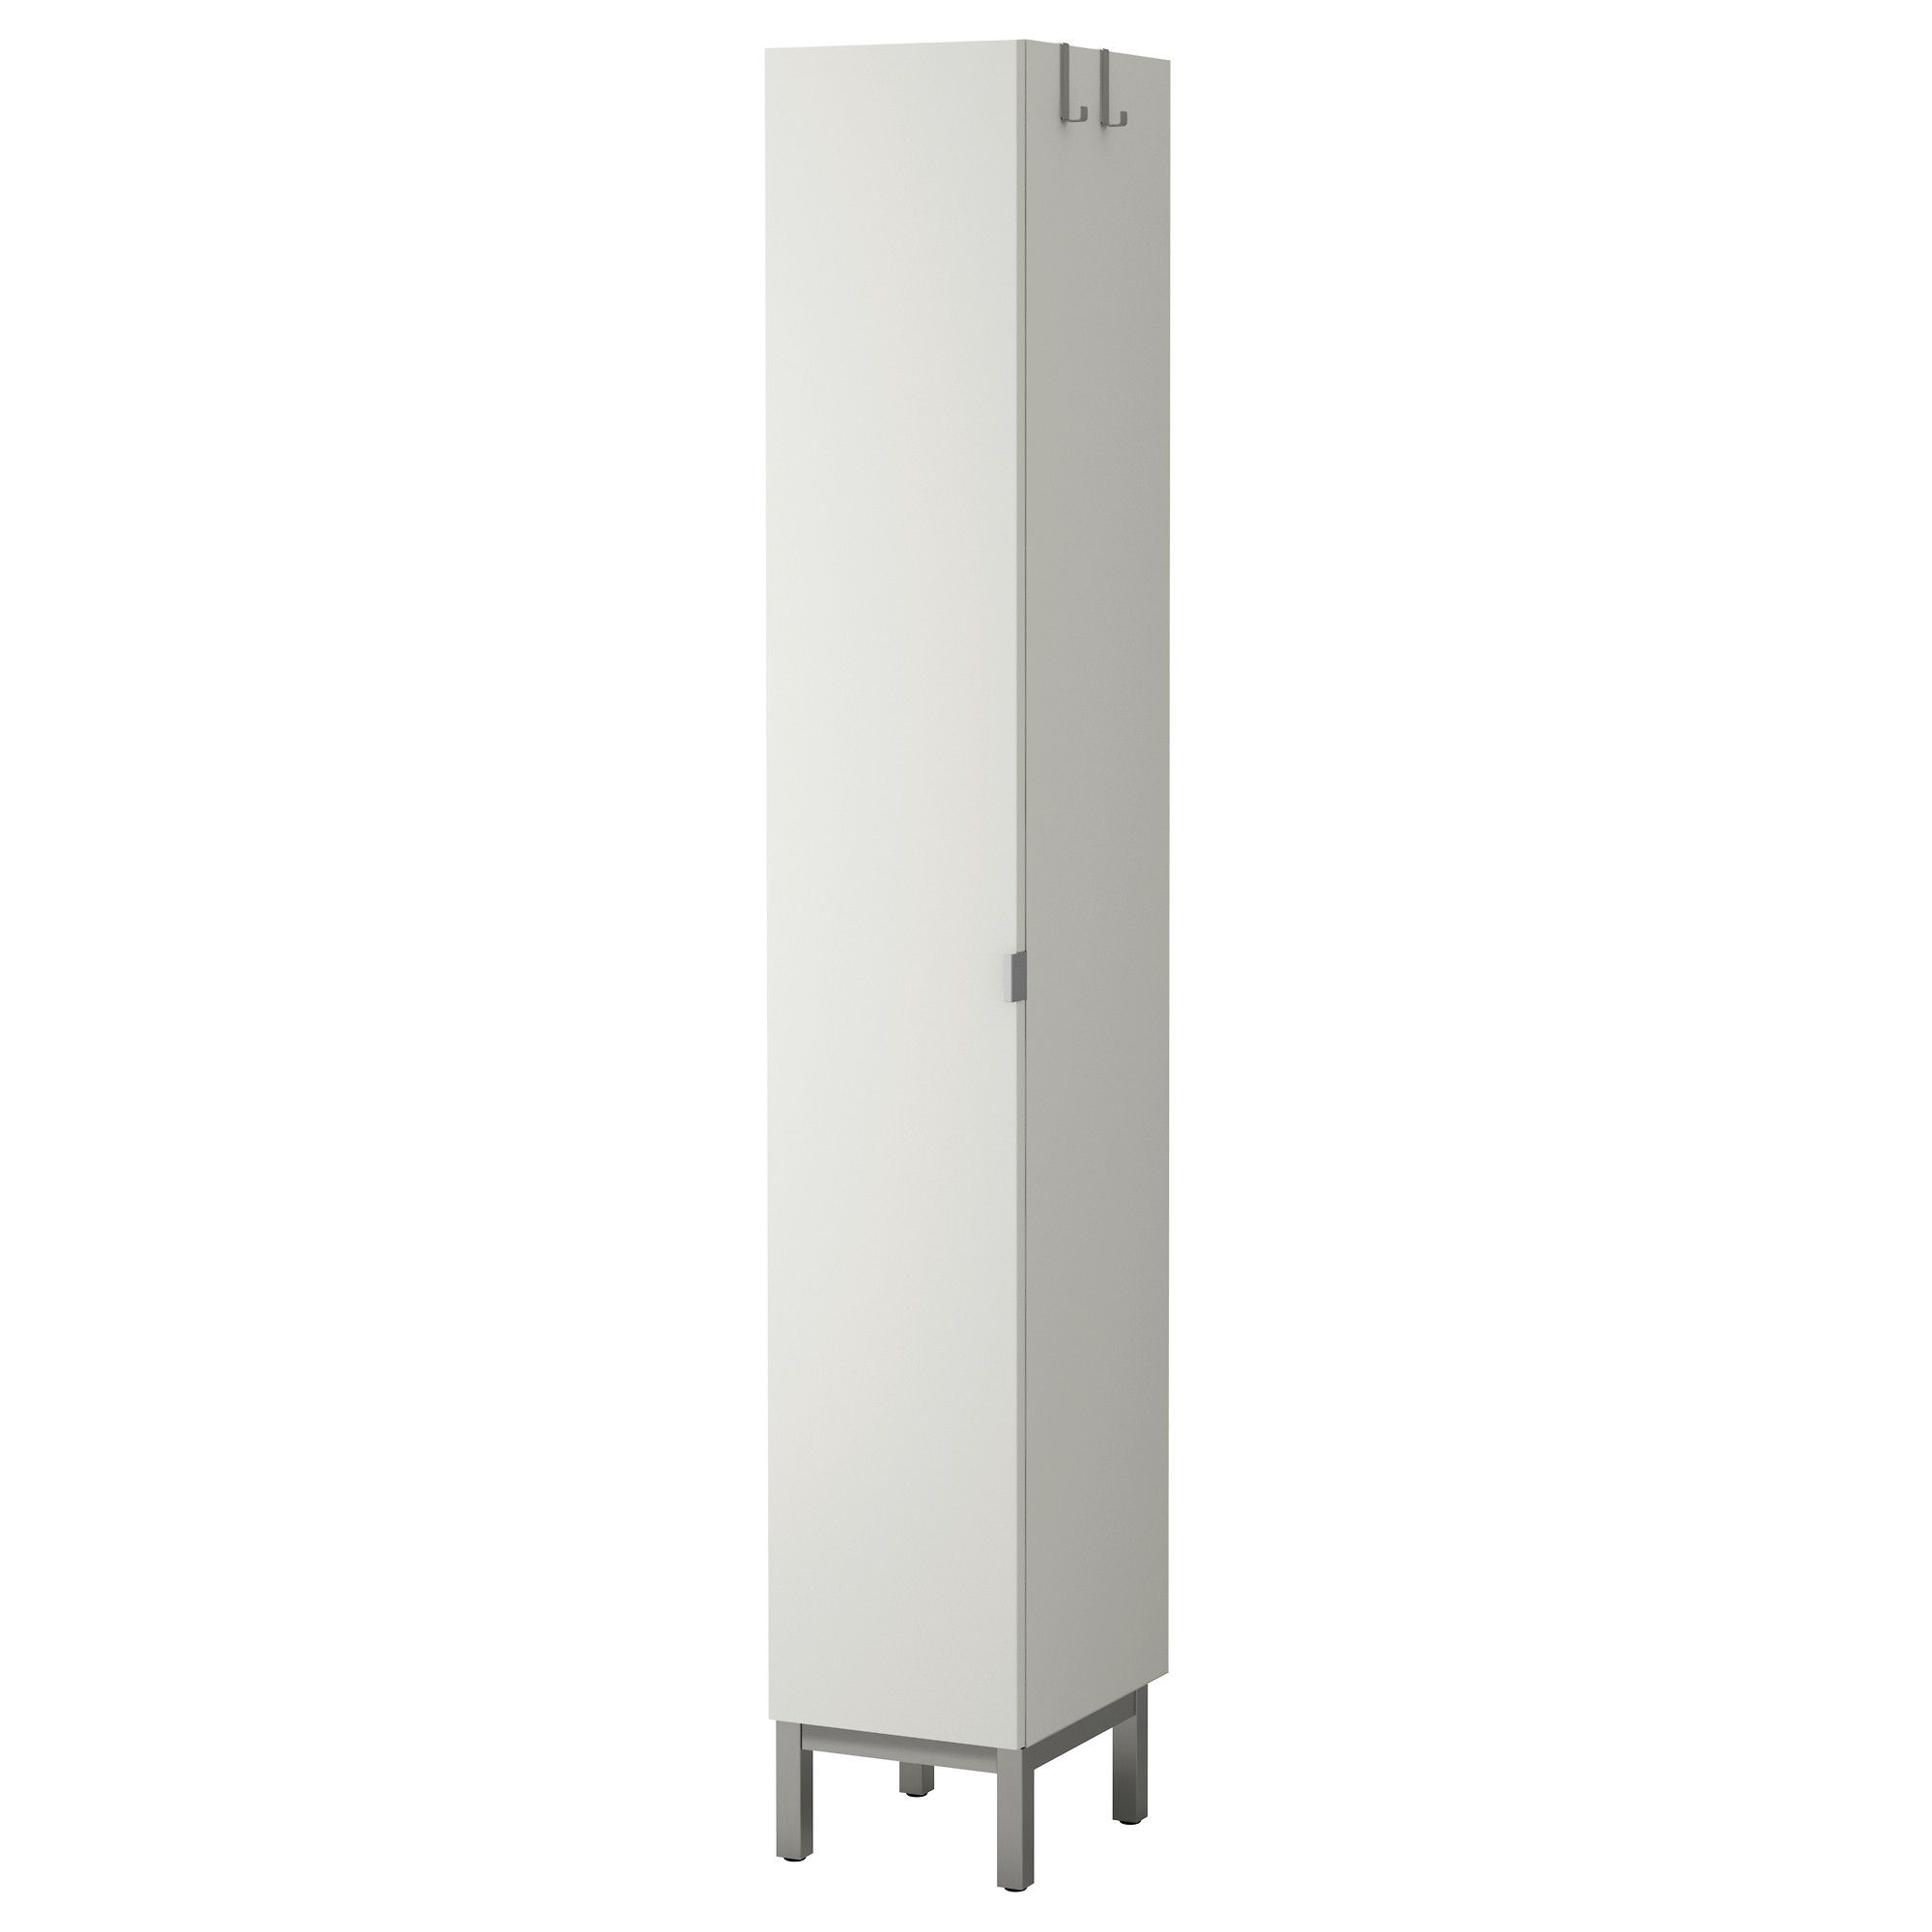 Lill ngen high cabinet 1 door white ikea basement - Tall bathroom storage cabinets with doors ...